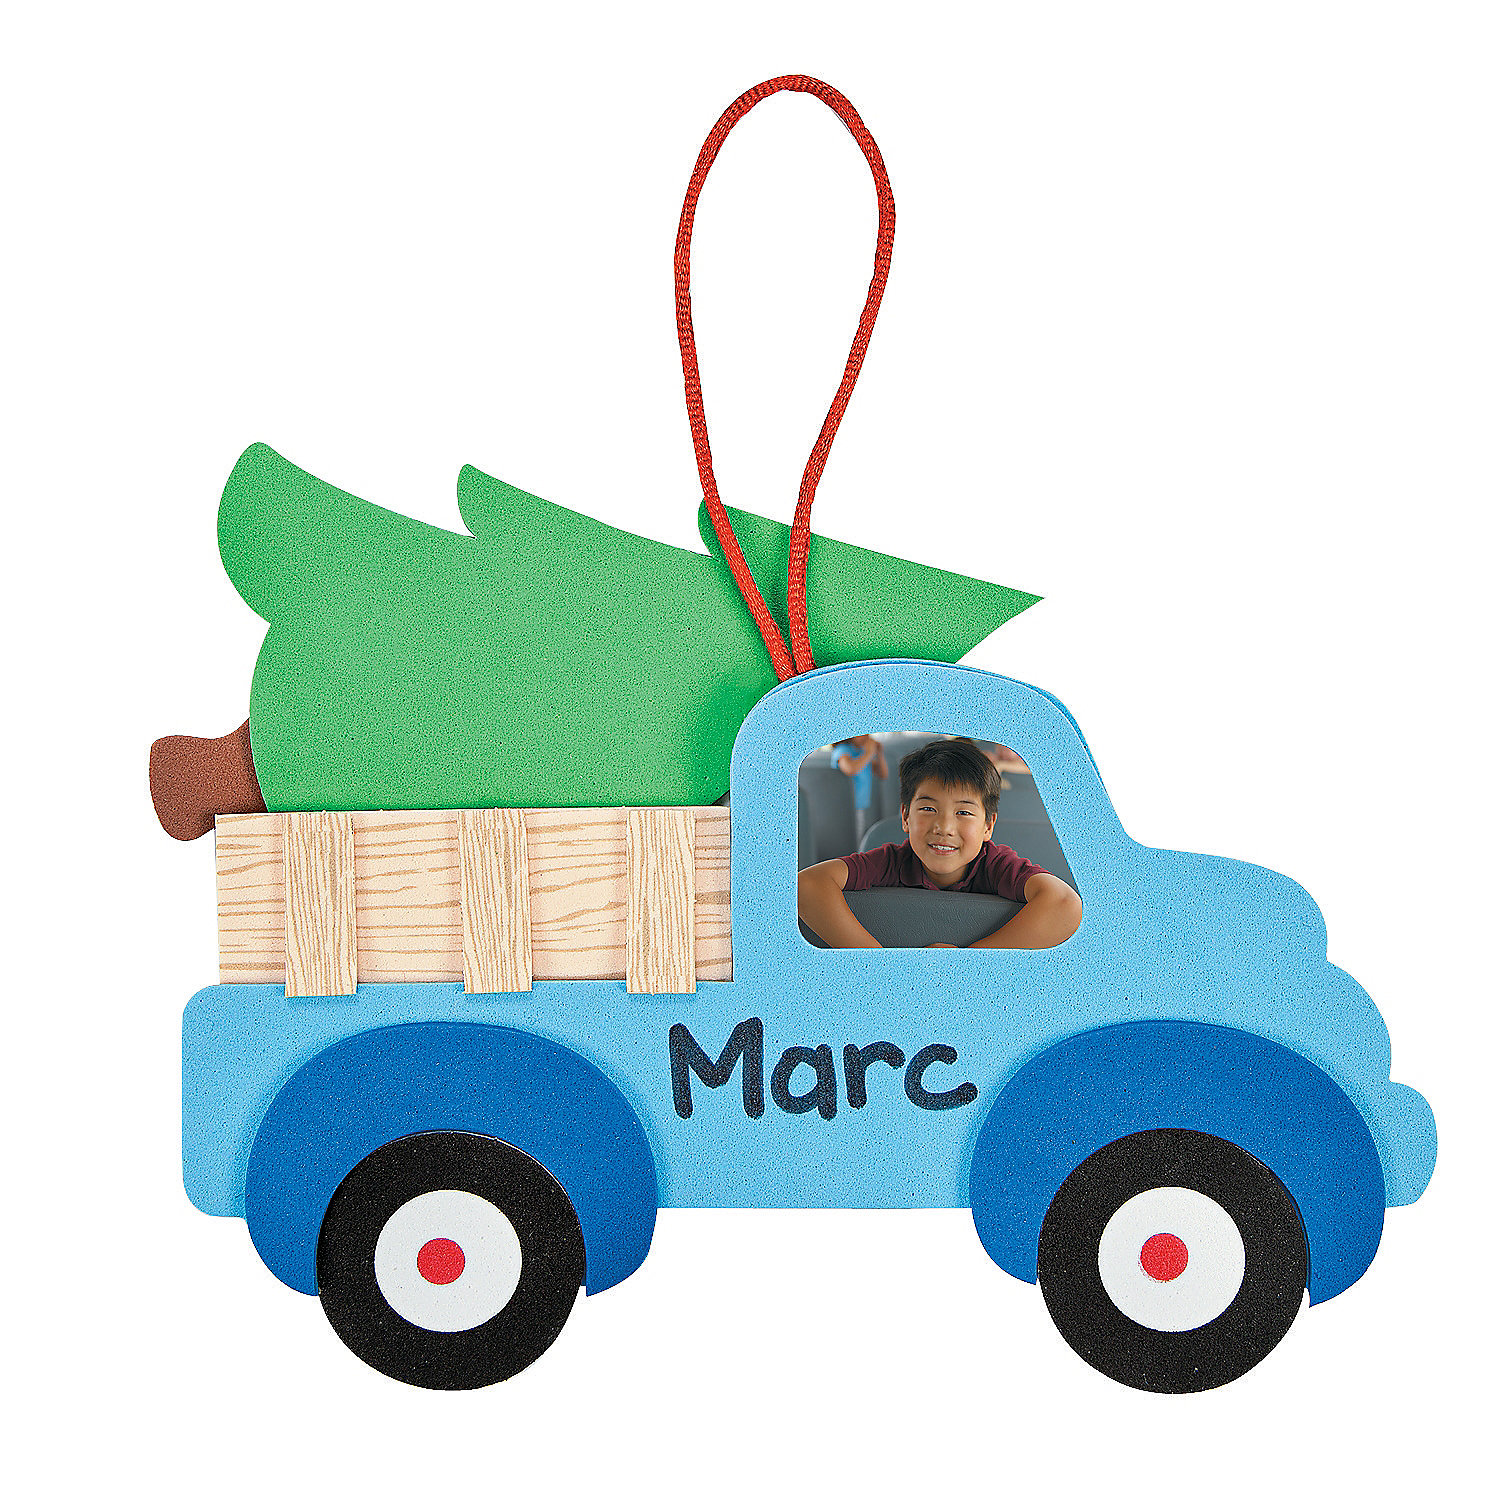 Christmas tree truck picture frame ornament craft kit for Photo frame ornament craft